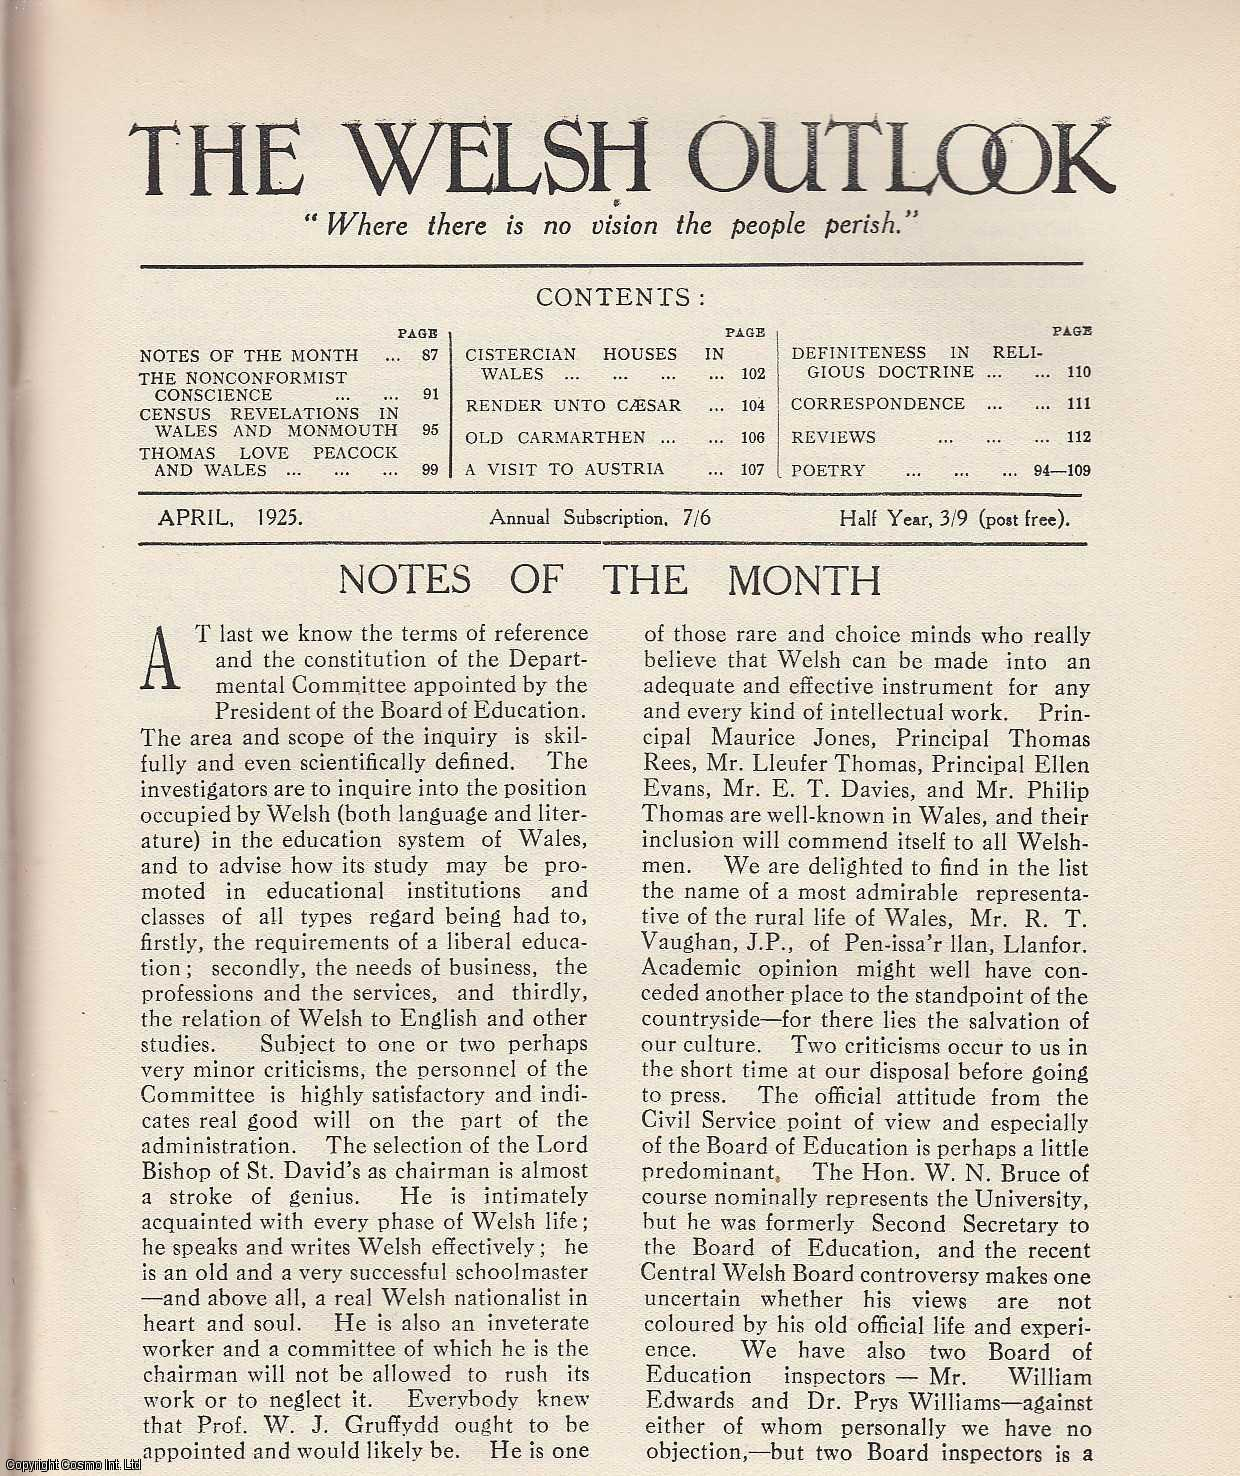 The Welsh Outlook. A Monthly Journal of National Social Progress. April, 1925. Contains; The Nonconformist Conscience by H. Idris Bell; Census Revelations in Wales and Monmouth by J.E. Tomley; Thomas Love Peacock and Wales by Professor H. Wright; Cistercian Houses in Wales by herbert M. Vaughan; Render Unto Caesar by M. Watcyn-Williams; Old Carmarthen by R.M. Thomas; A Visit to Austria (Autumn, 1924) by Mrs. A.P. Graves; Definiteness in Religious Doctrine by Dr. E.E. Thomas., Thomas Jones (Editor)